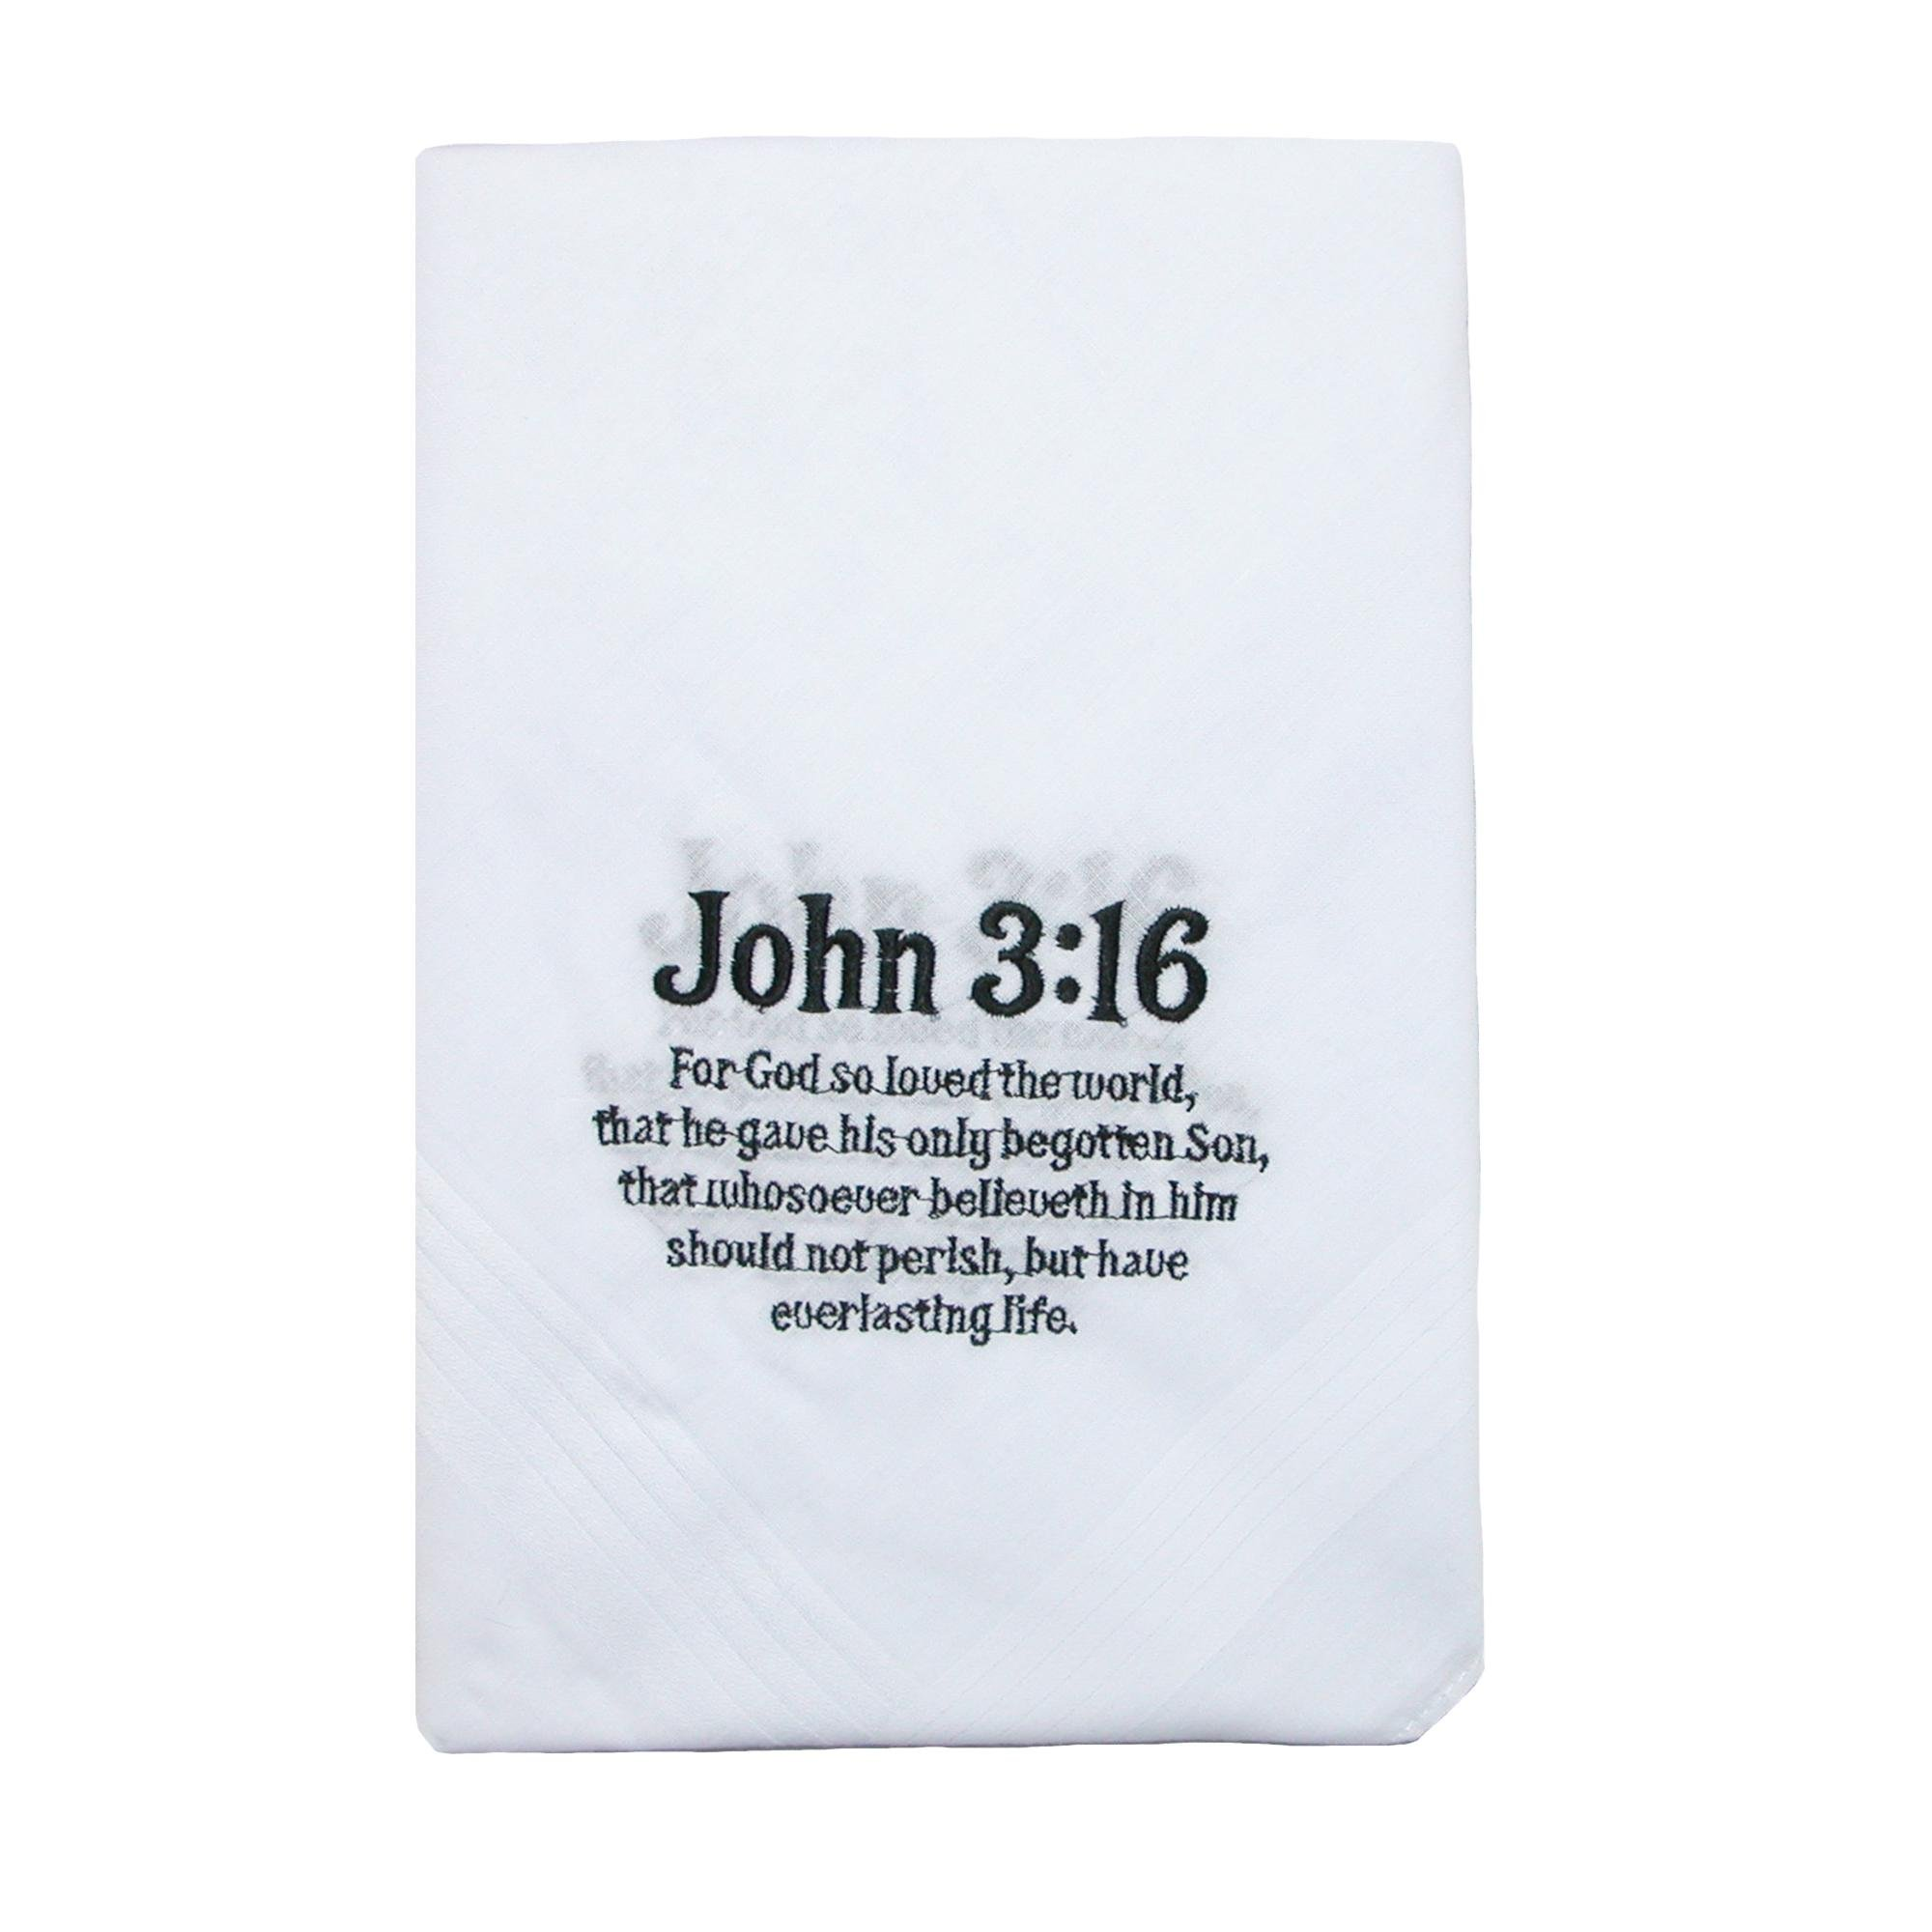 Umo Lorenzo Cotton John 3:16 Embroidered Handkerchief Set (Pack of 6), White